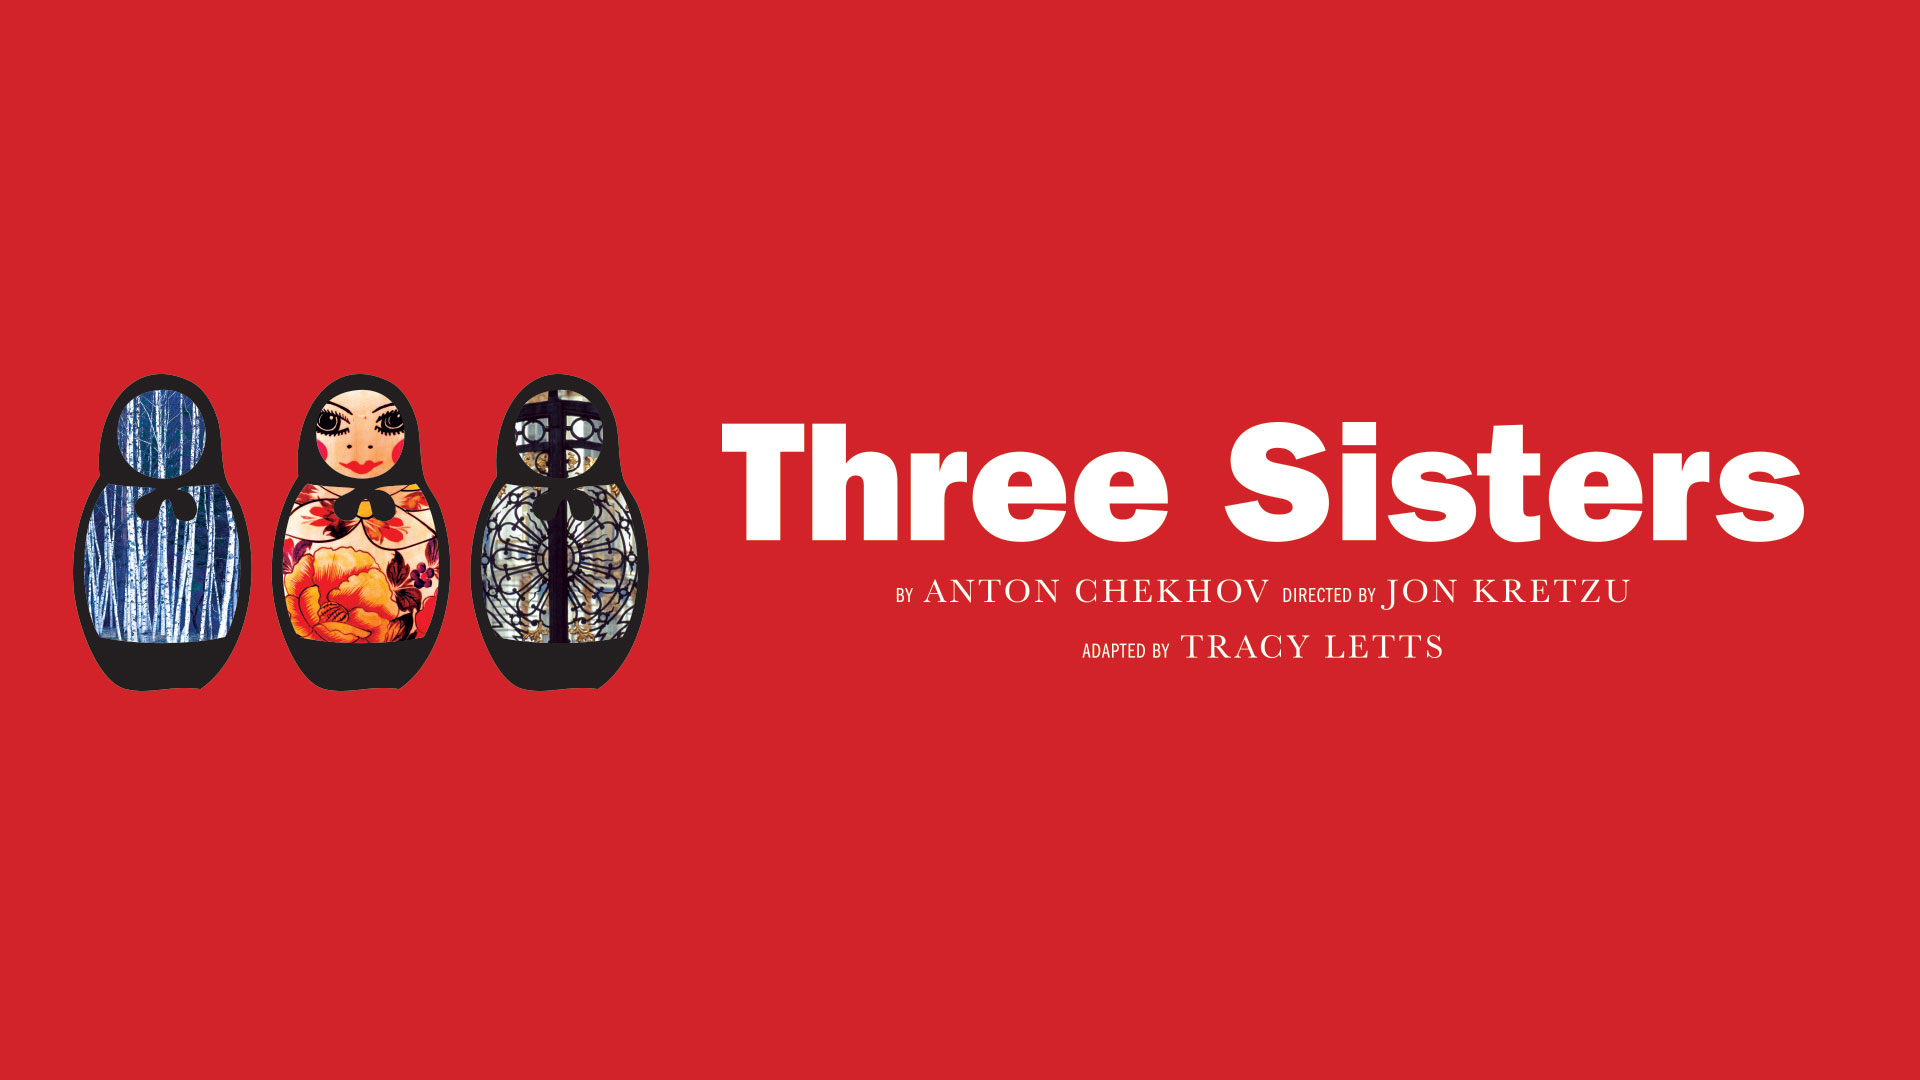 three-sisters-showimage.jpg